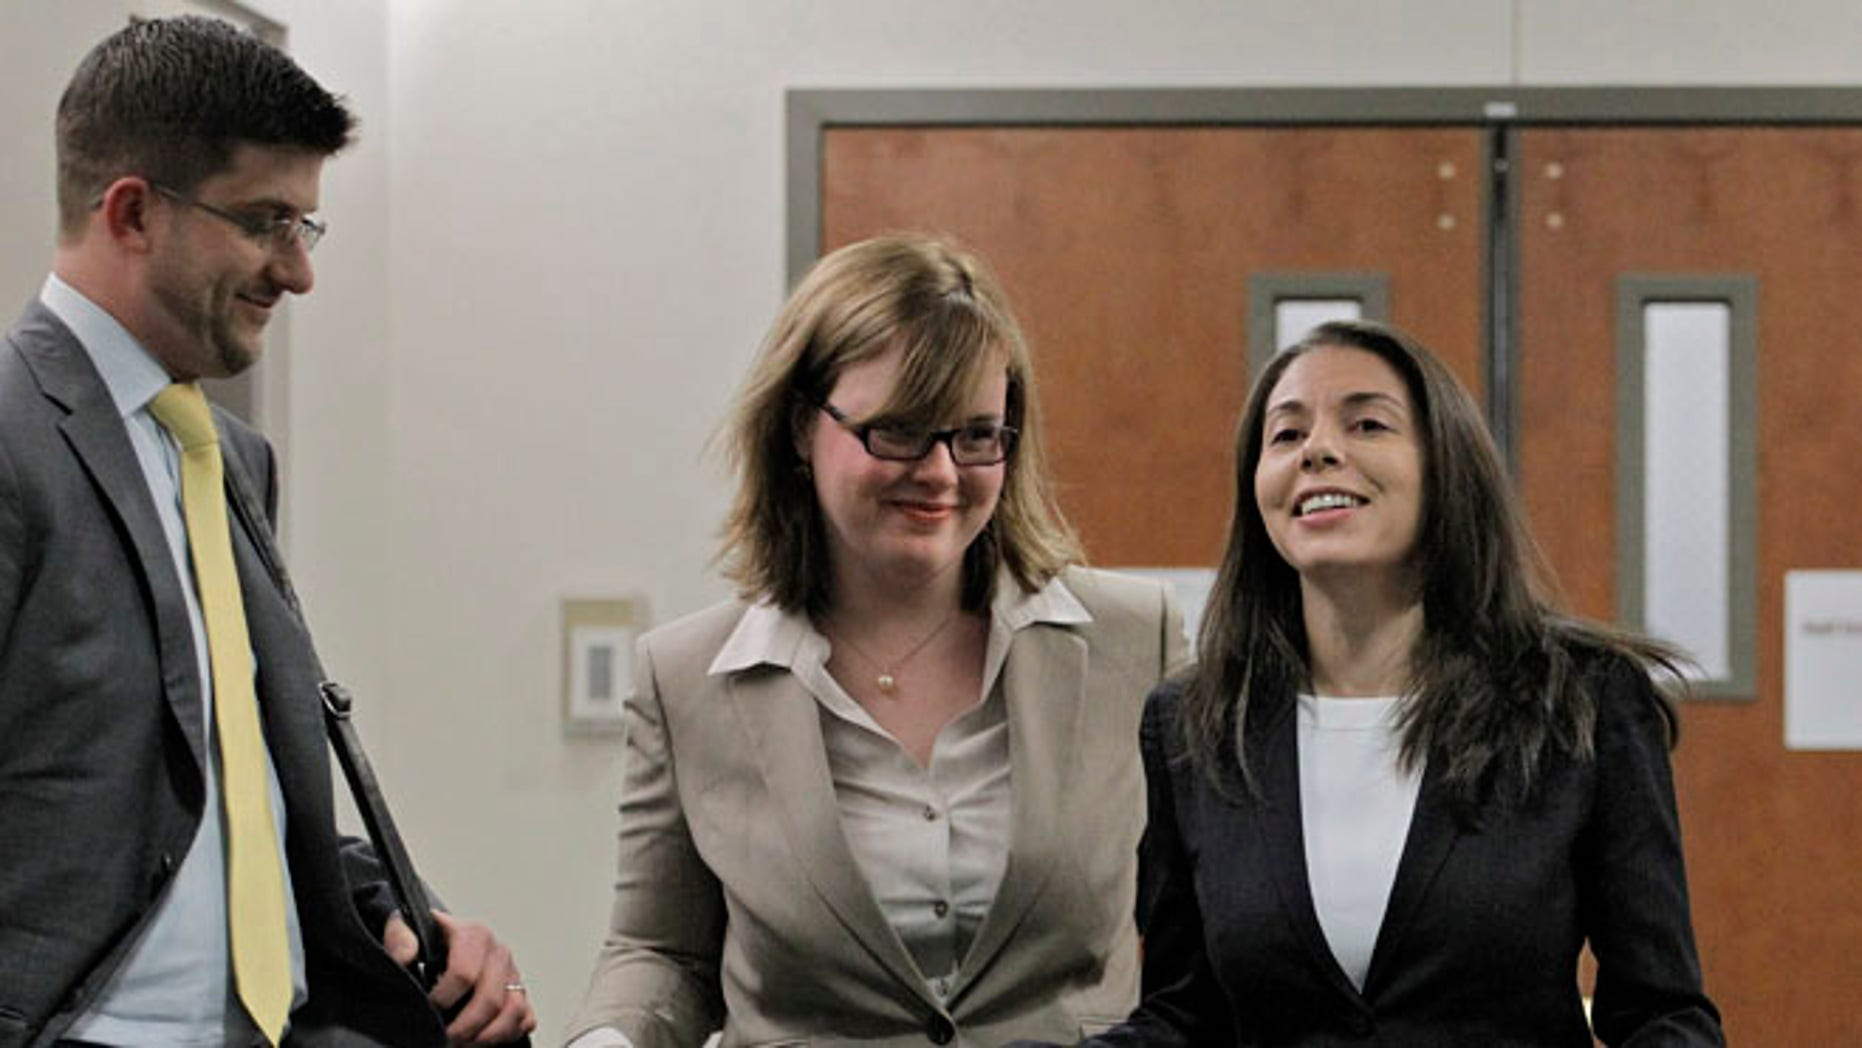 FoxNews.com reporter Jana Winter, right, and her attorneys are shown after the New York Court of Appeals threw out a subpoena requiring her to go to Colorado and reveal sources for an exclusive story or face jail.